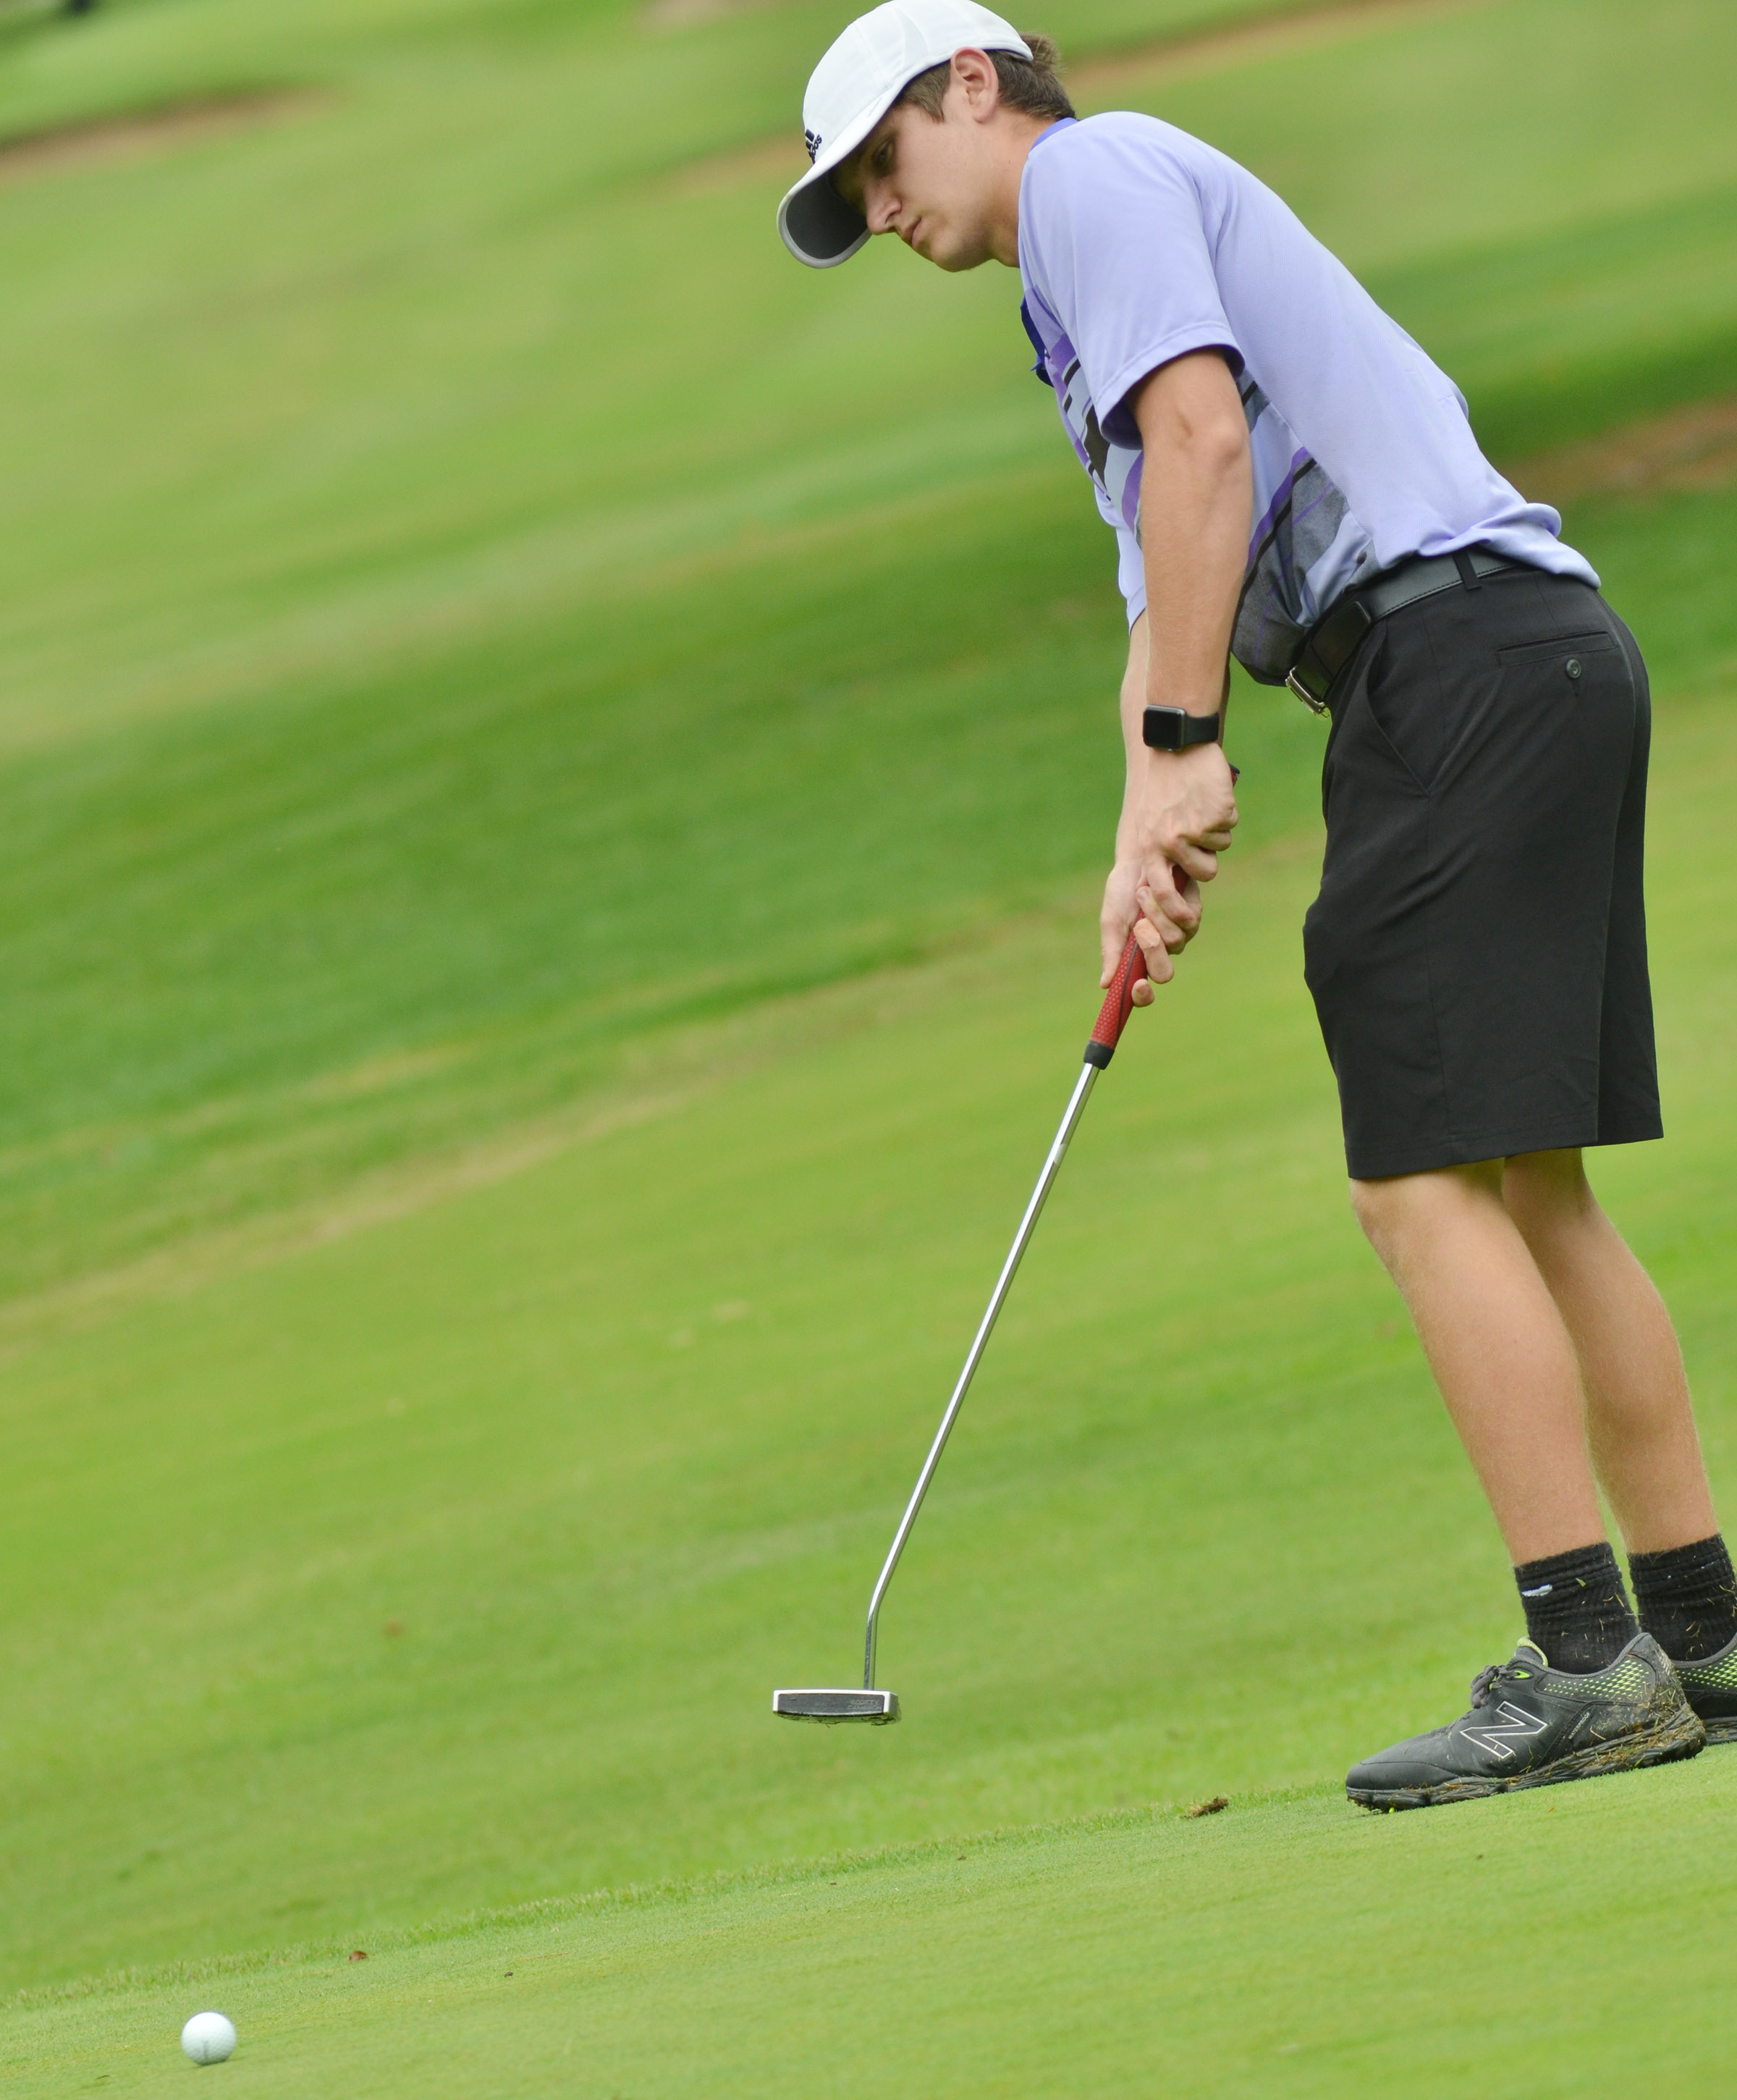 CHS junior Myles Murrell putts.